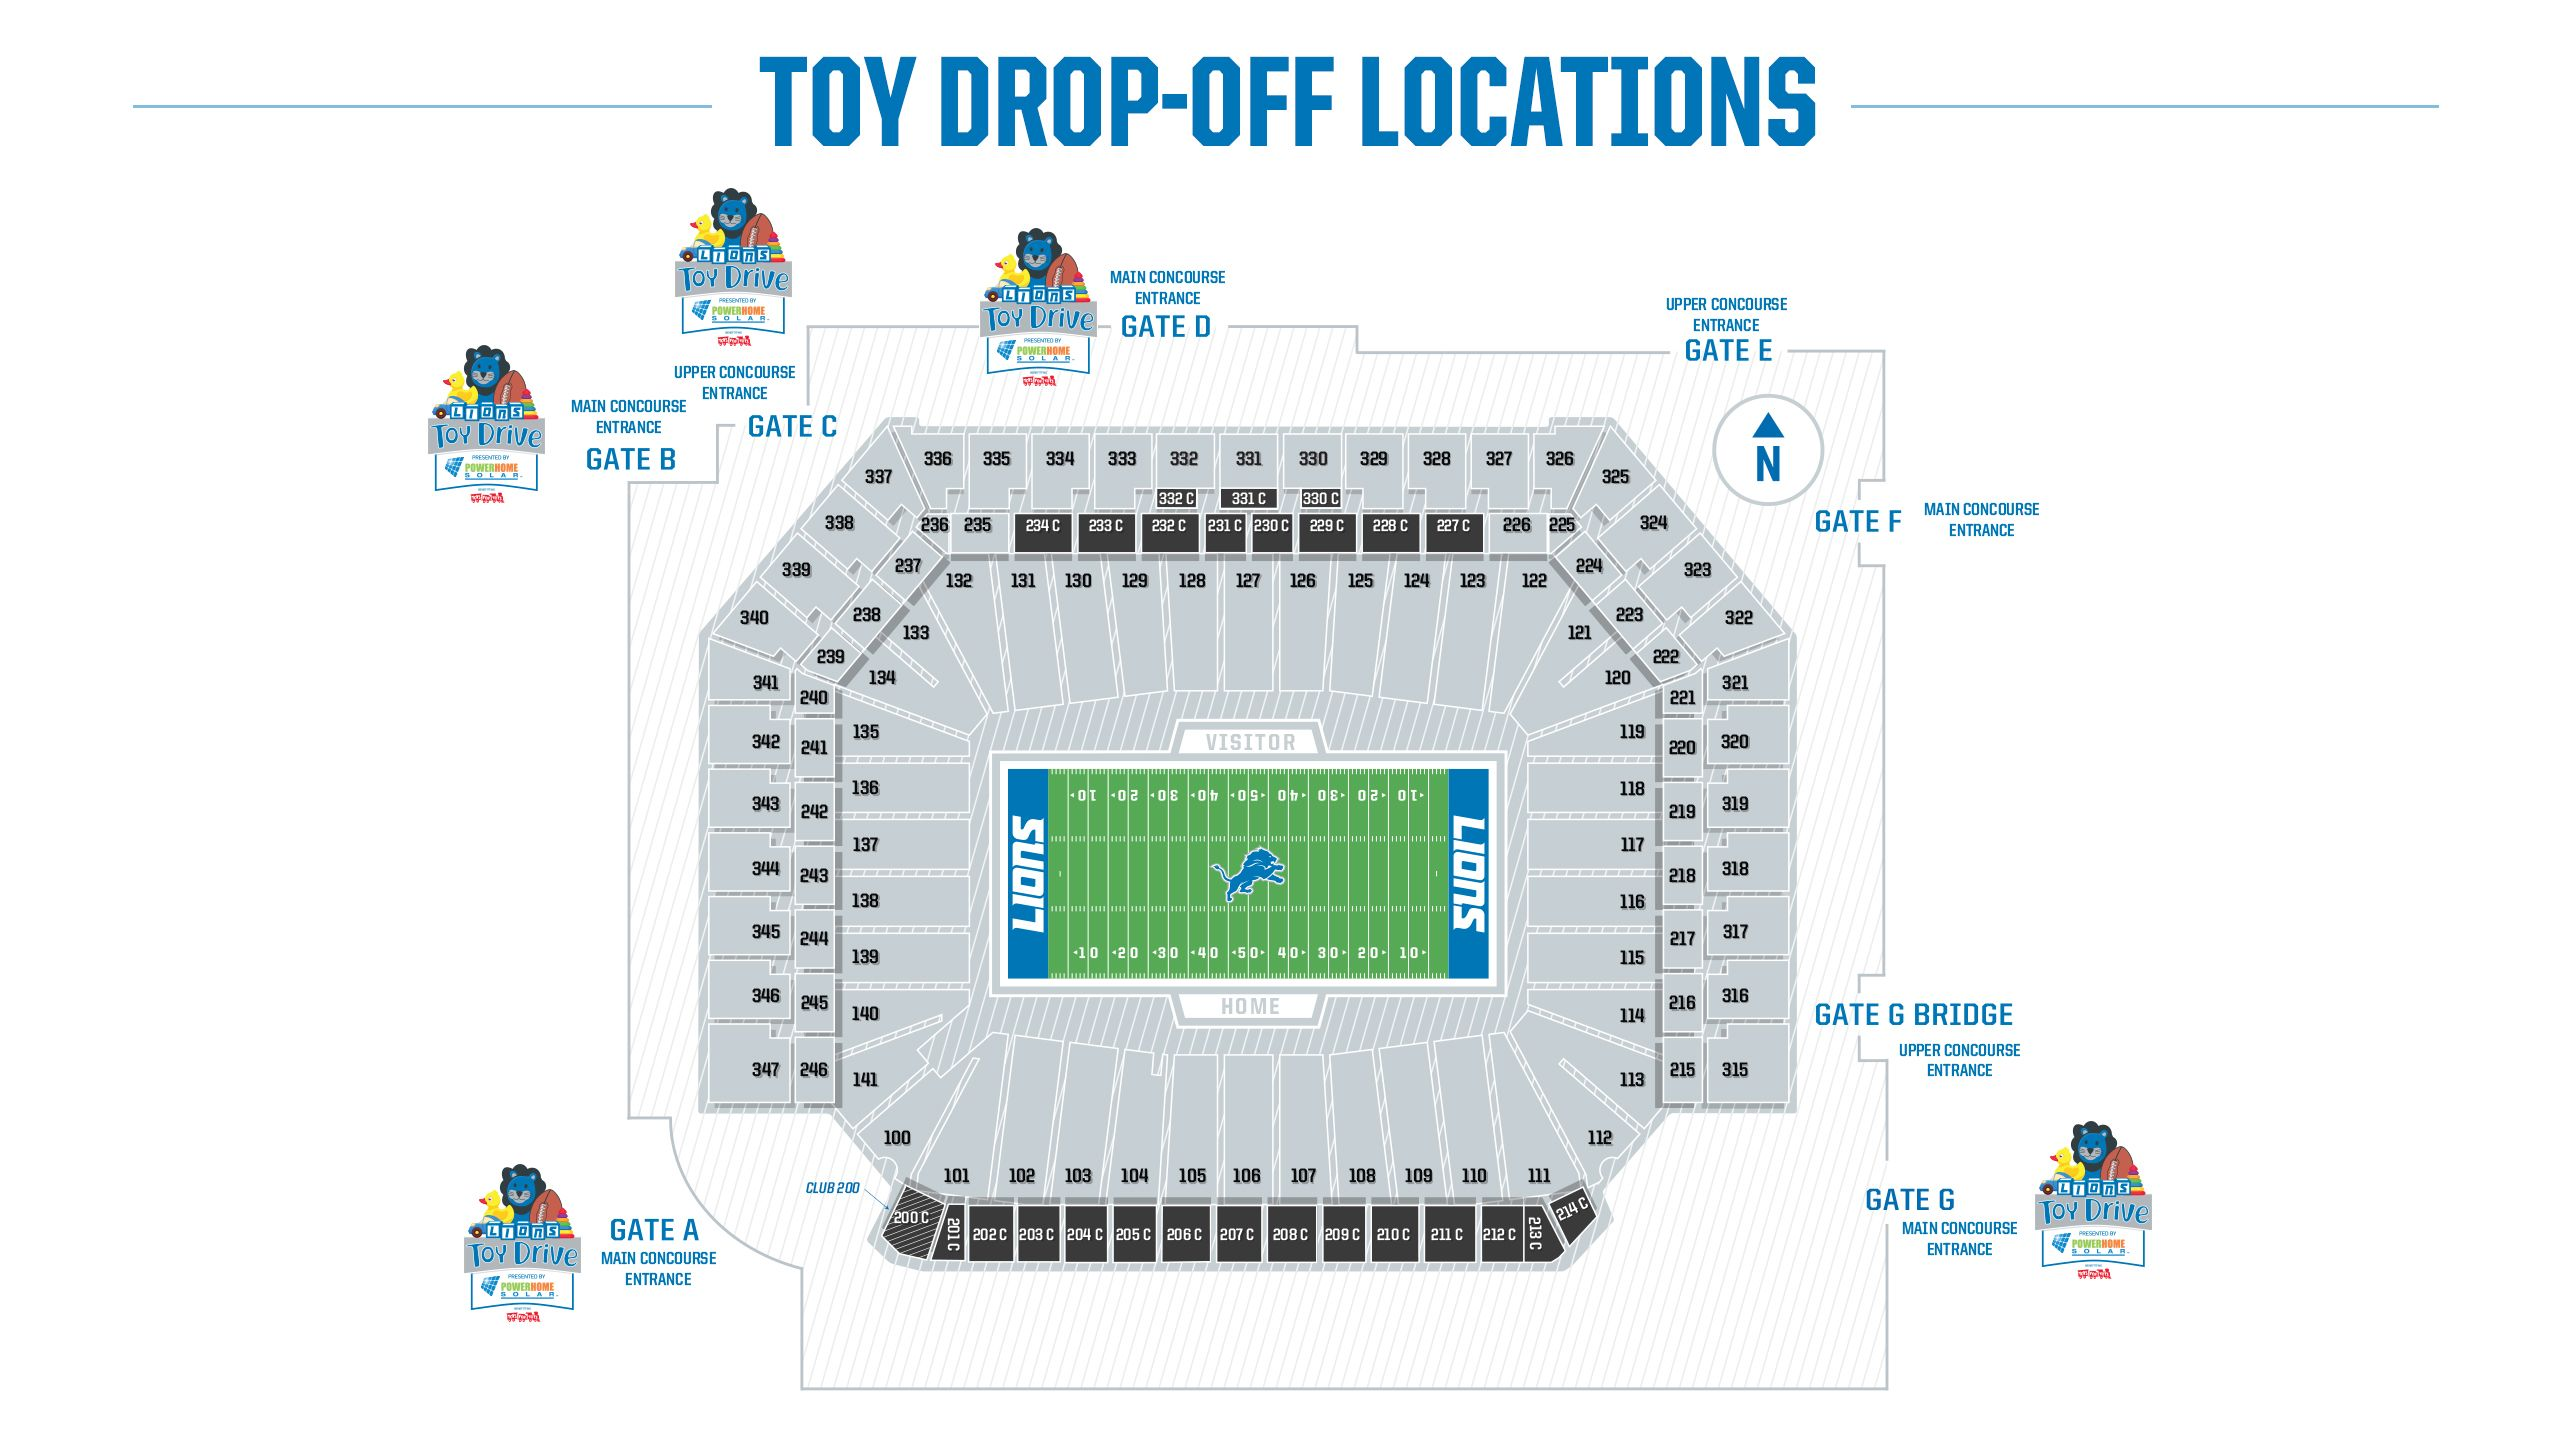 toy-drop-off-locations